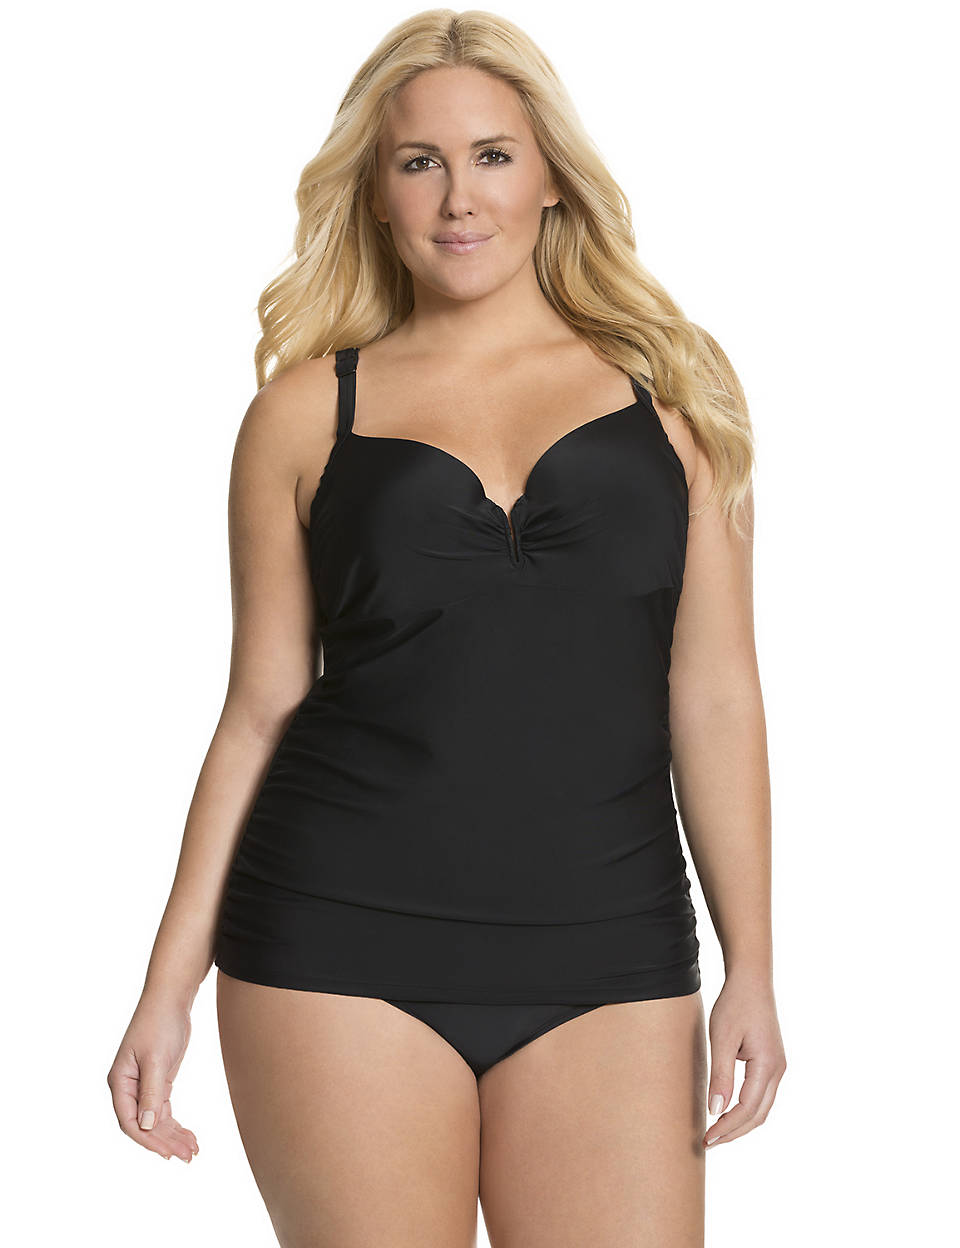 4a1491c9d50b6 V-wire swim tank with built-in balconette bra by Cacique | Lane Bryant